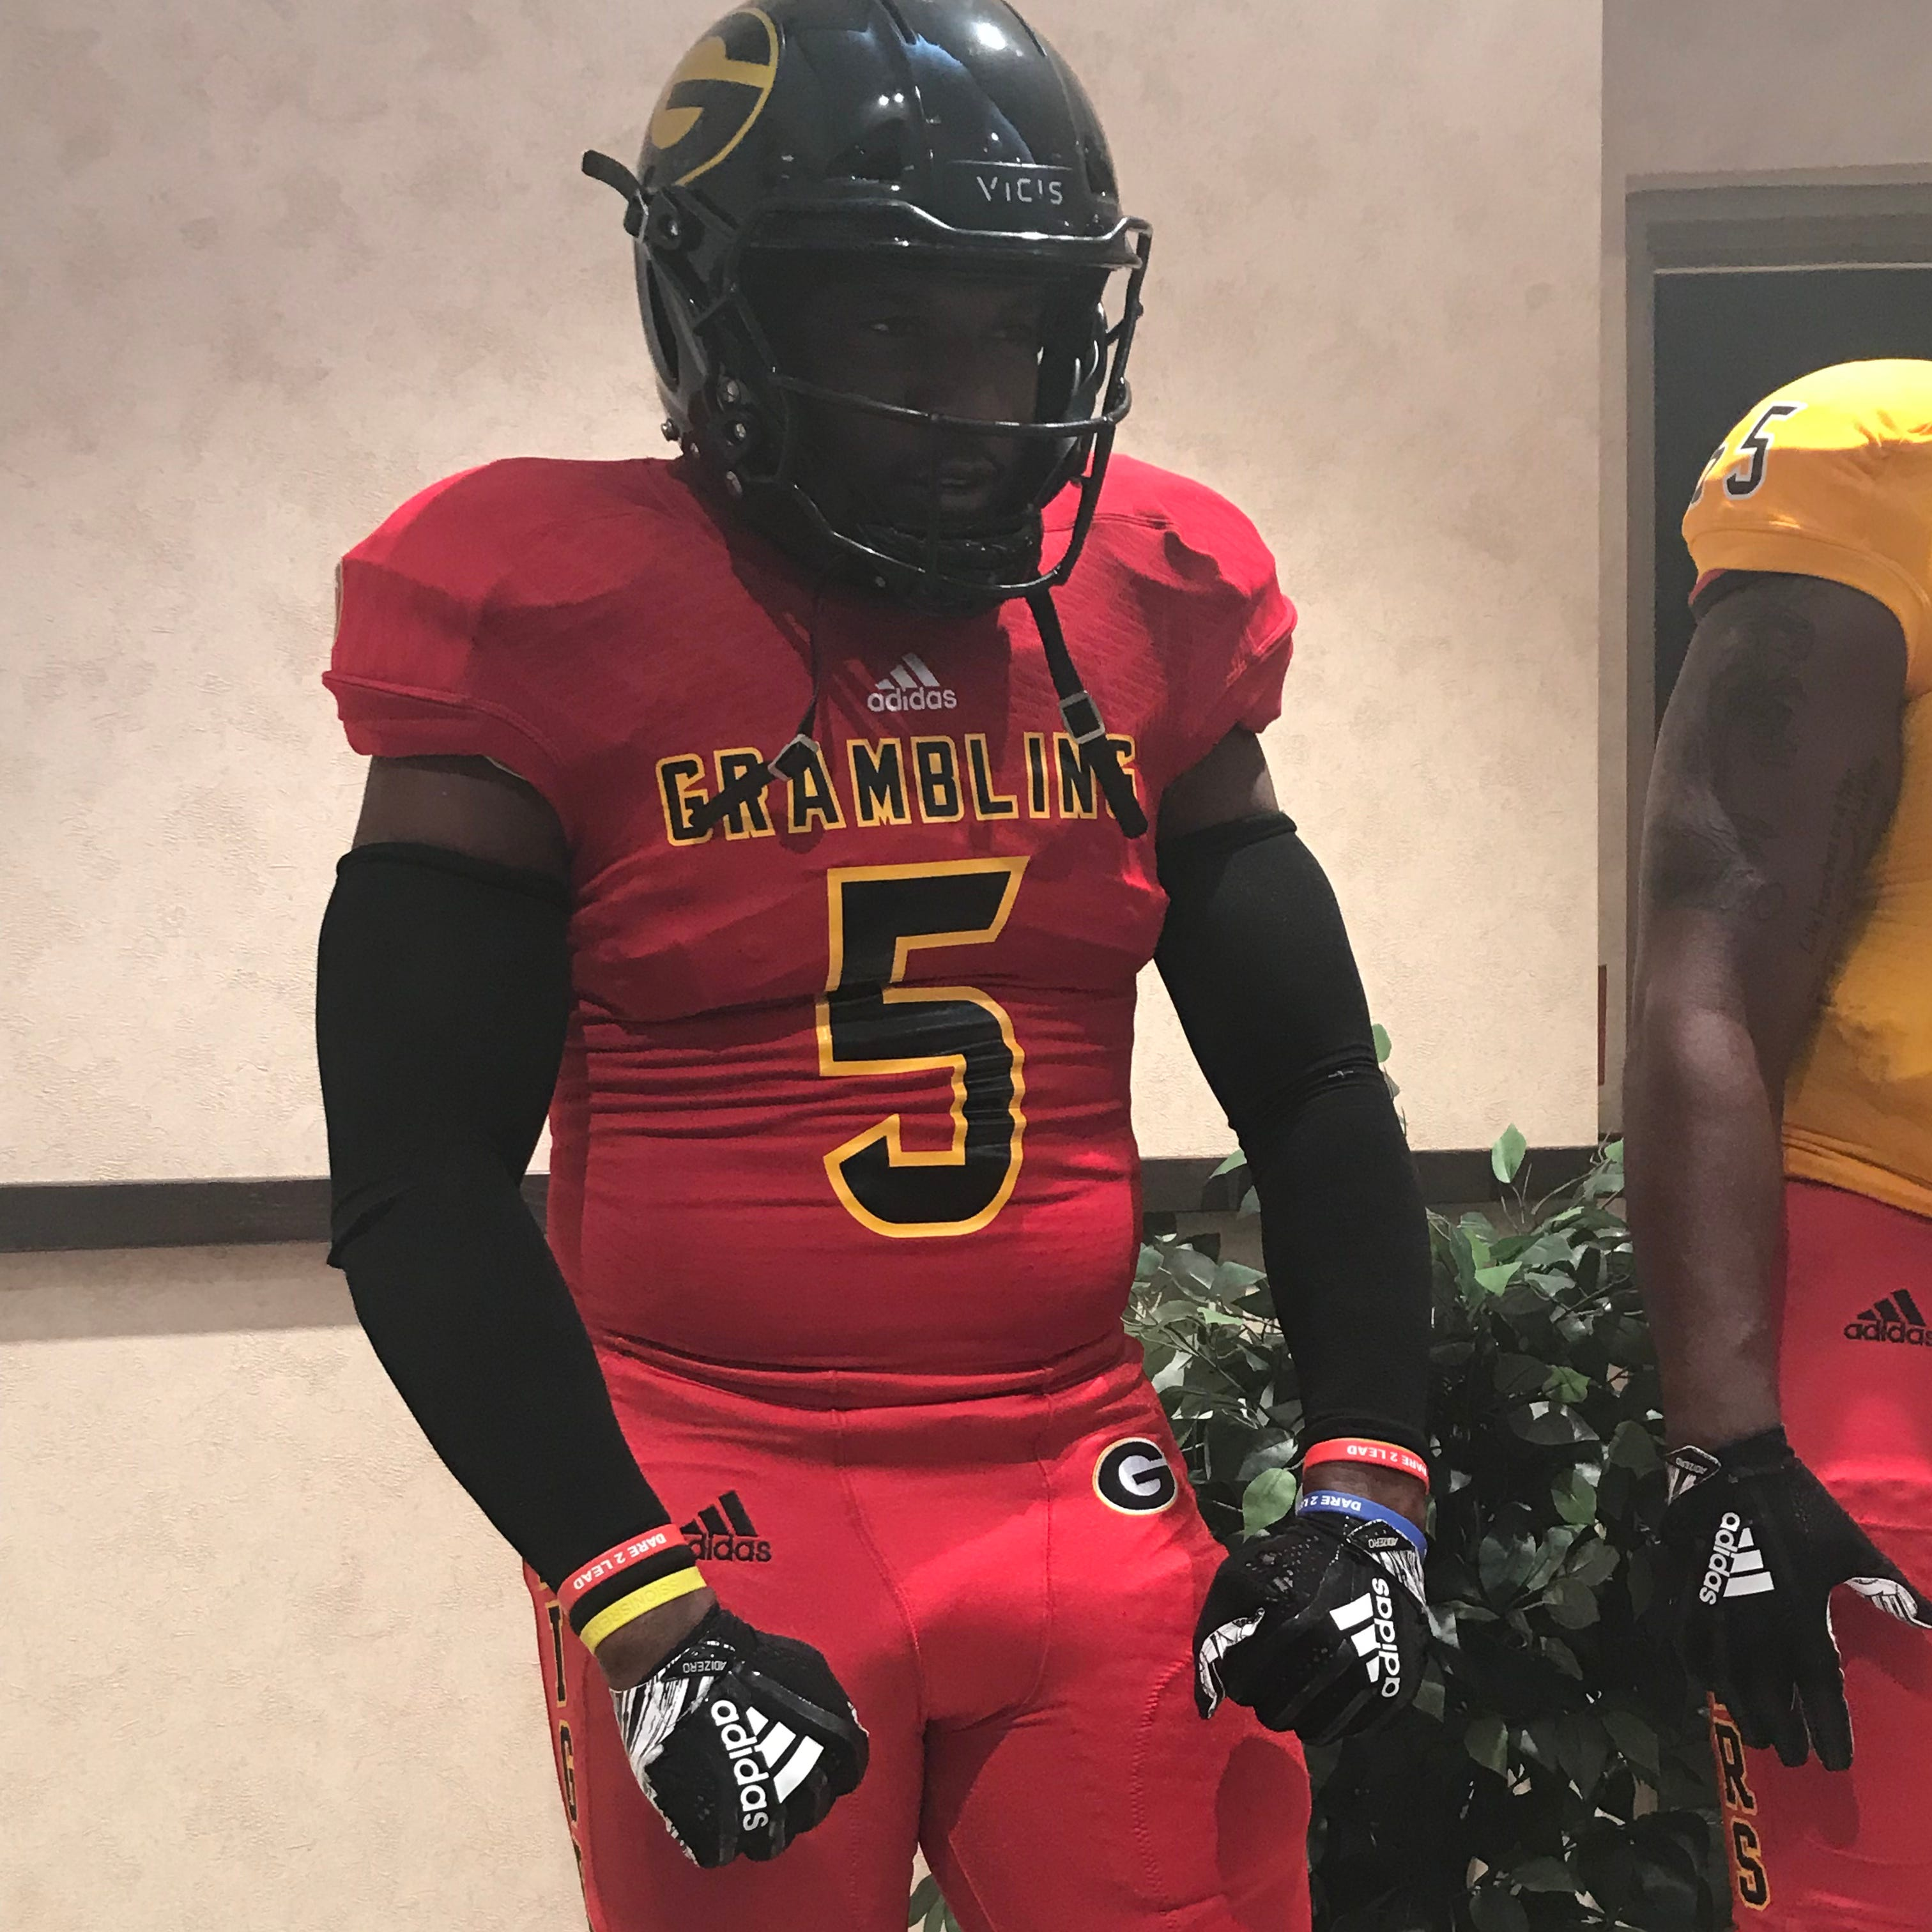 Grambling State unveils new adidas football uniforms